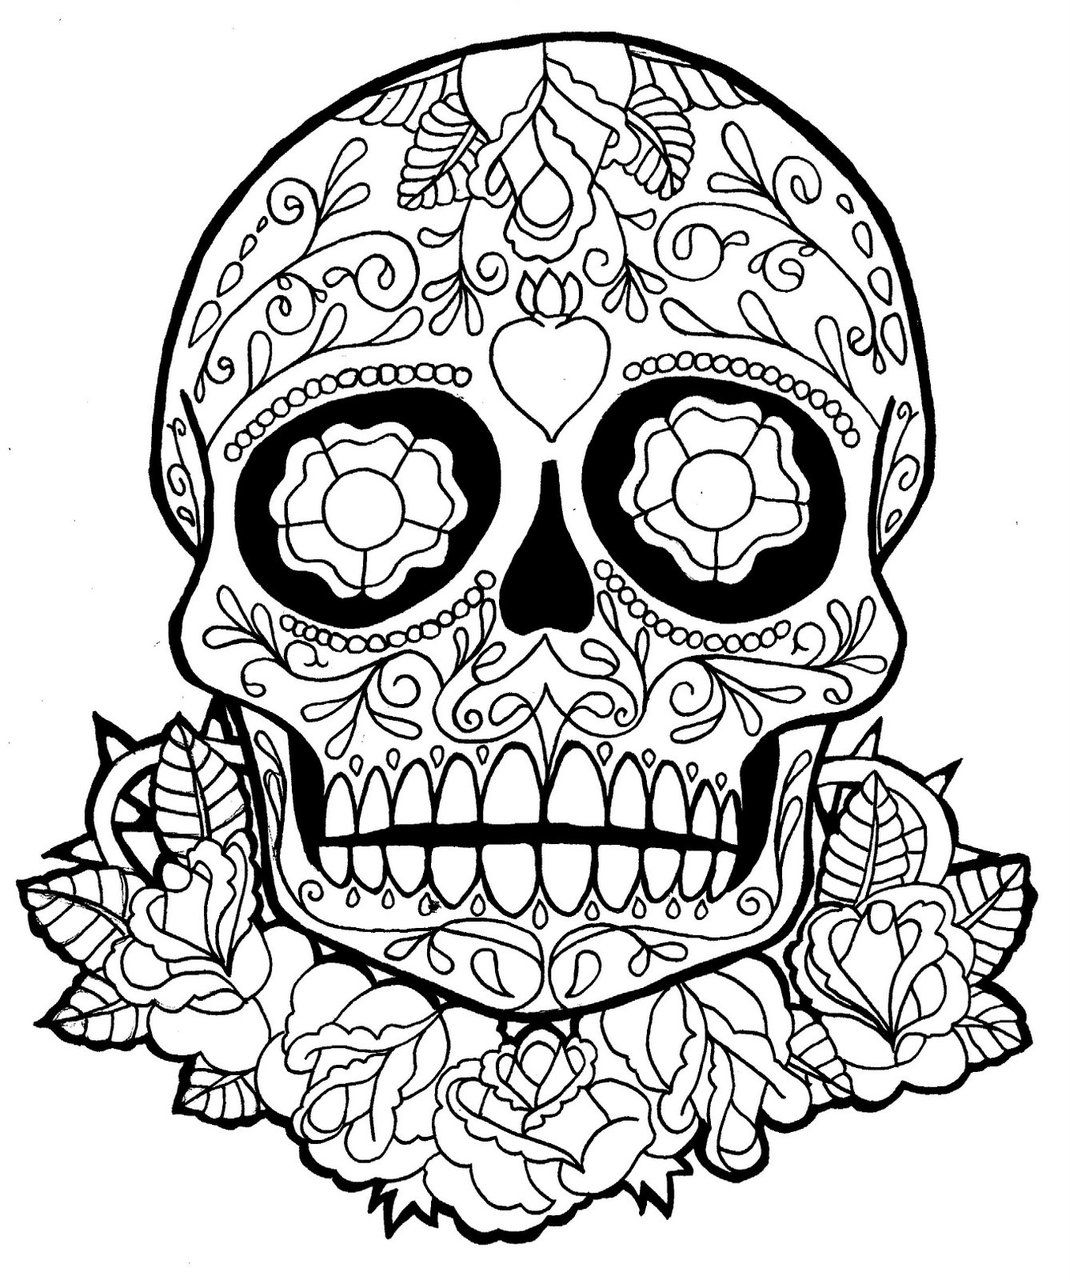 Halloween Ausmalbilder Totenkopf : Skull Coloring Pages For Teen Sugar Skull Dia De Los Muertos